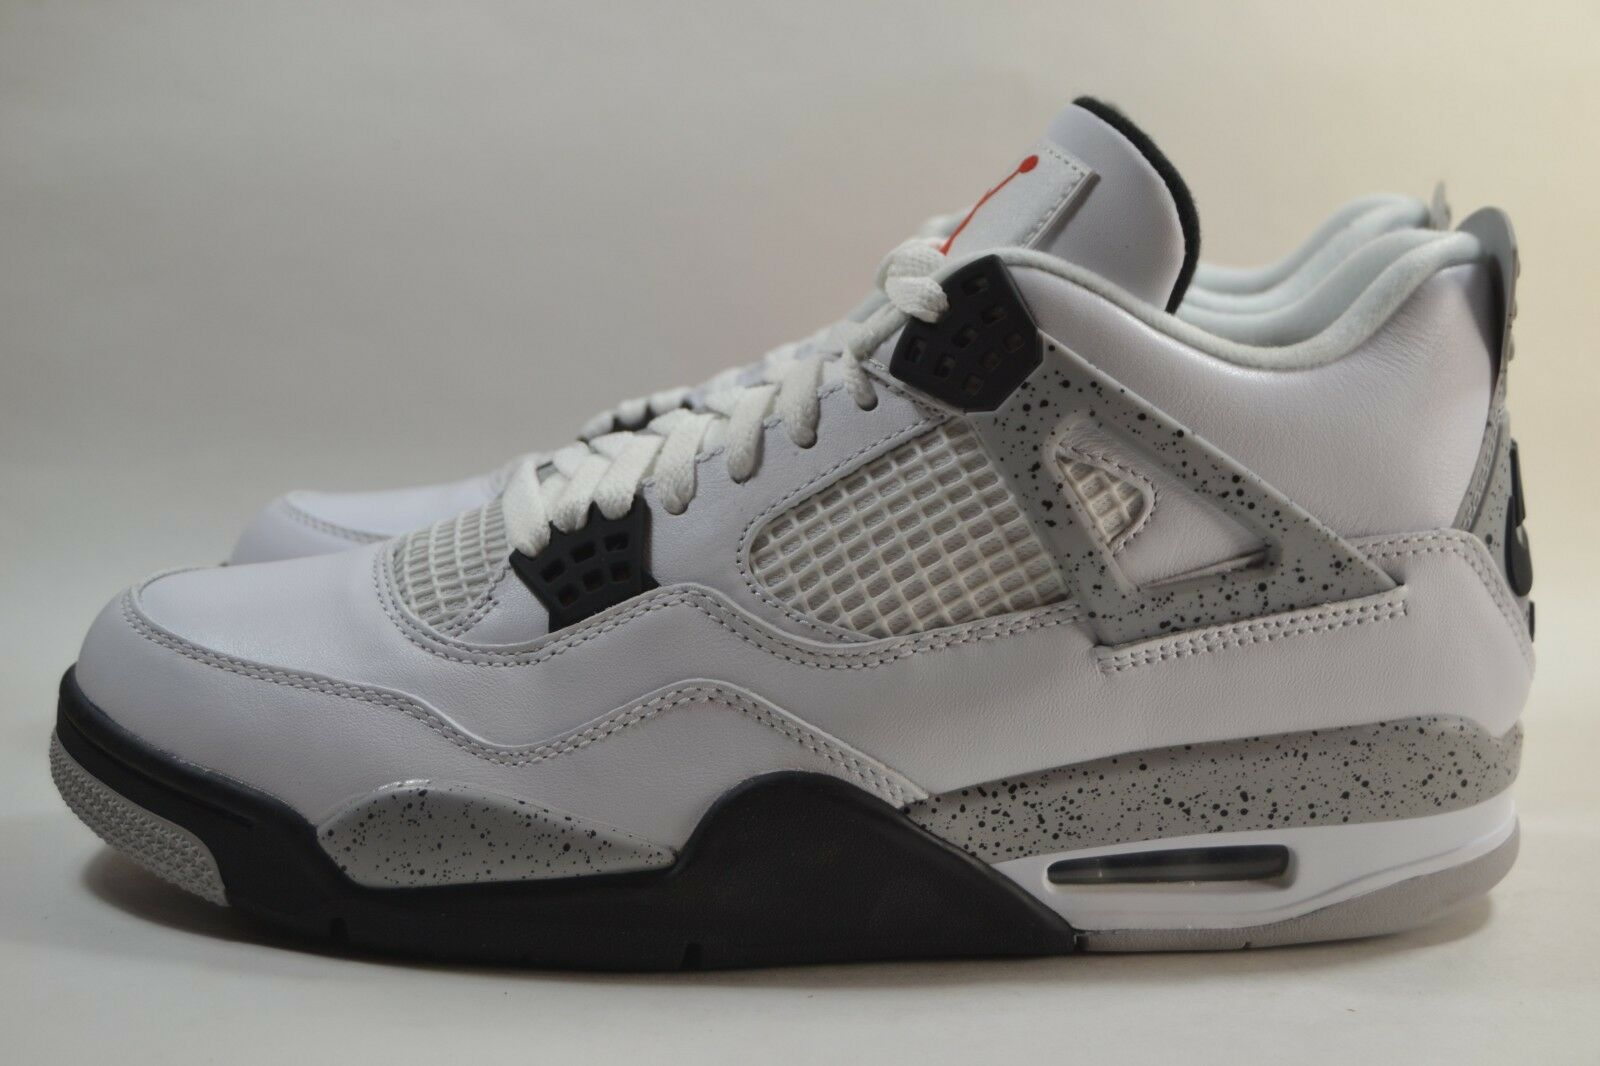 New Mens Nike Air Jordan 4 IV Retro White Cement Fire Red Grey 840606 192